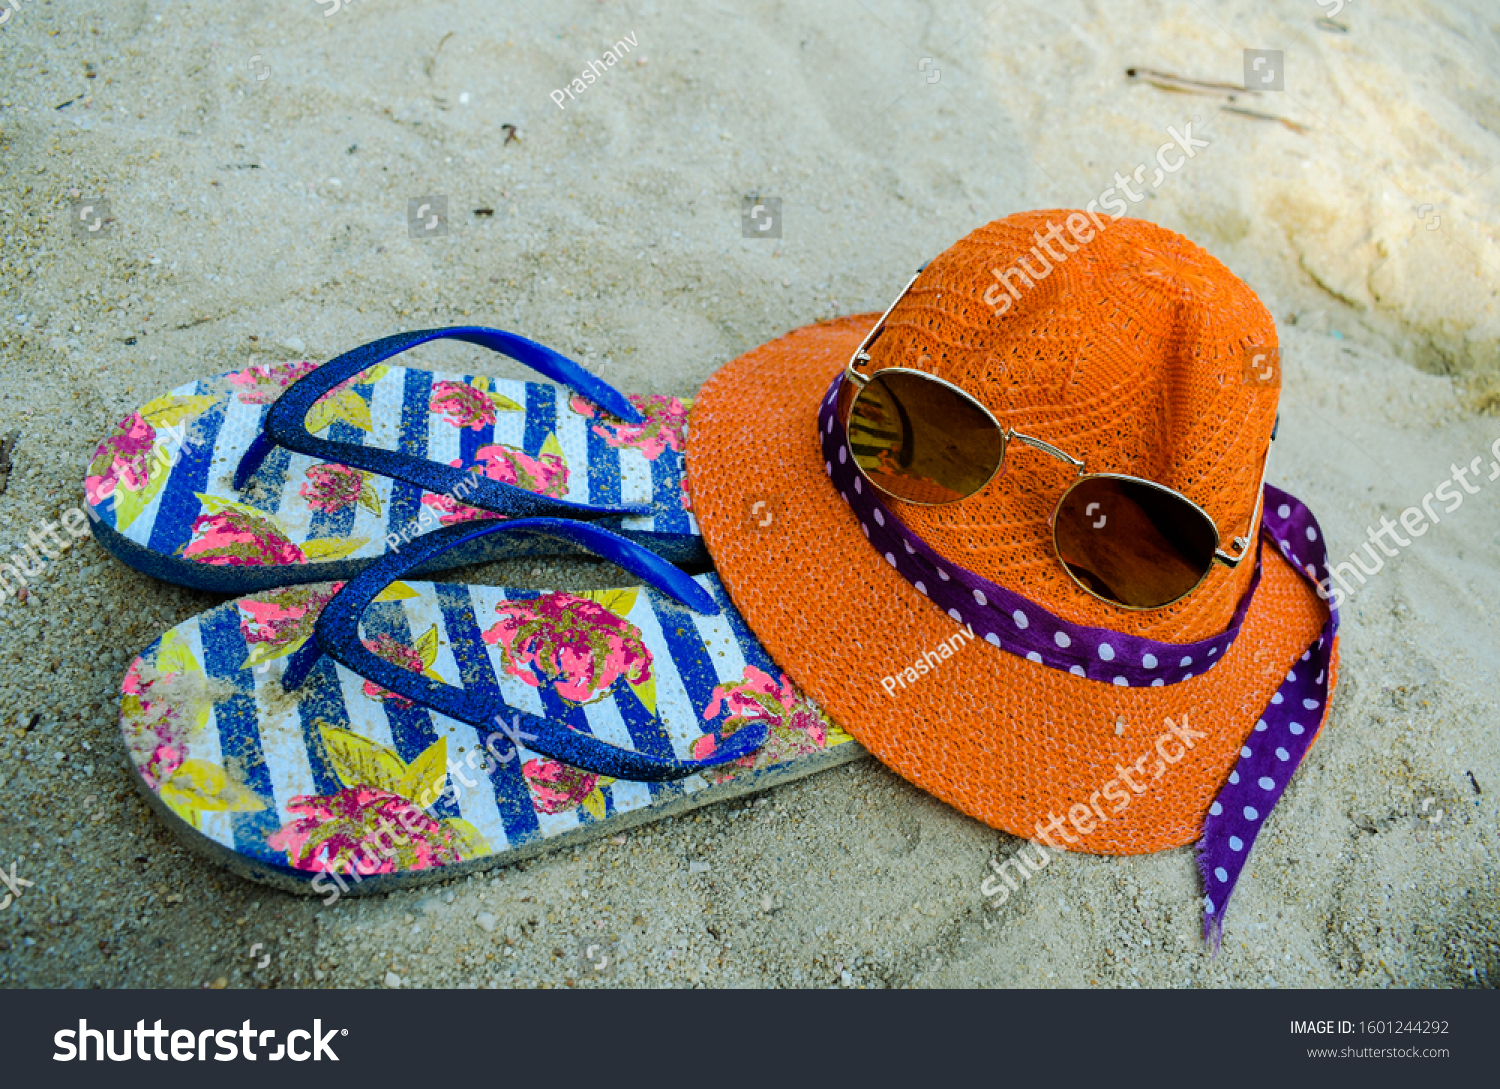 orange hat, flip flops and sunglasses on beach sand